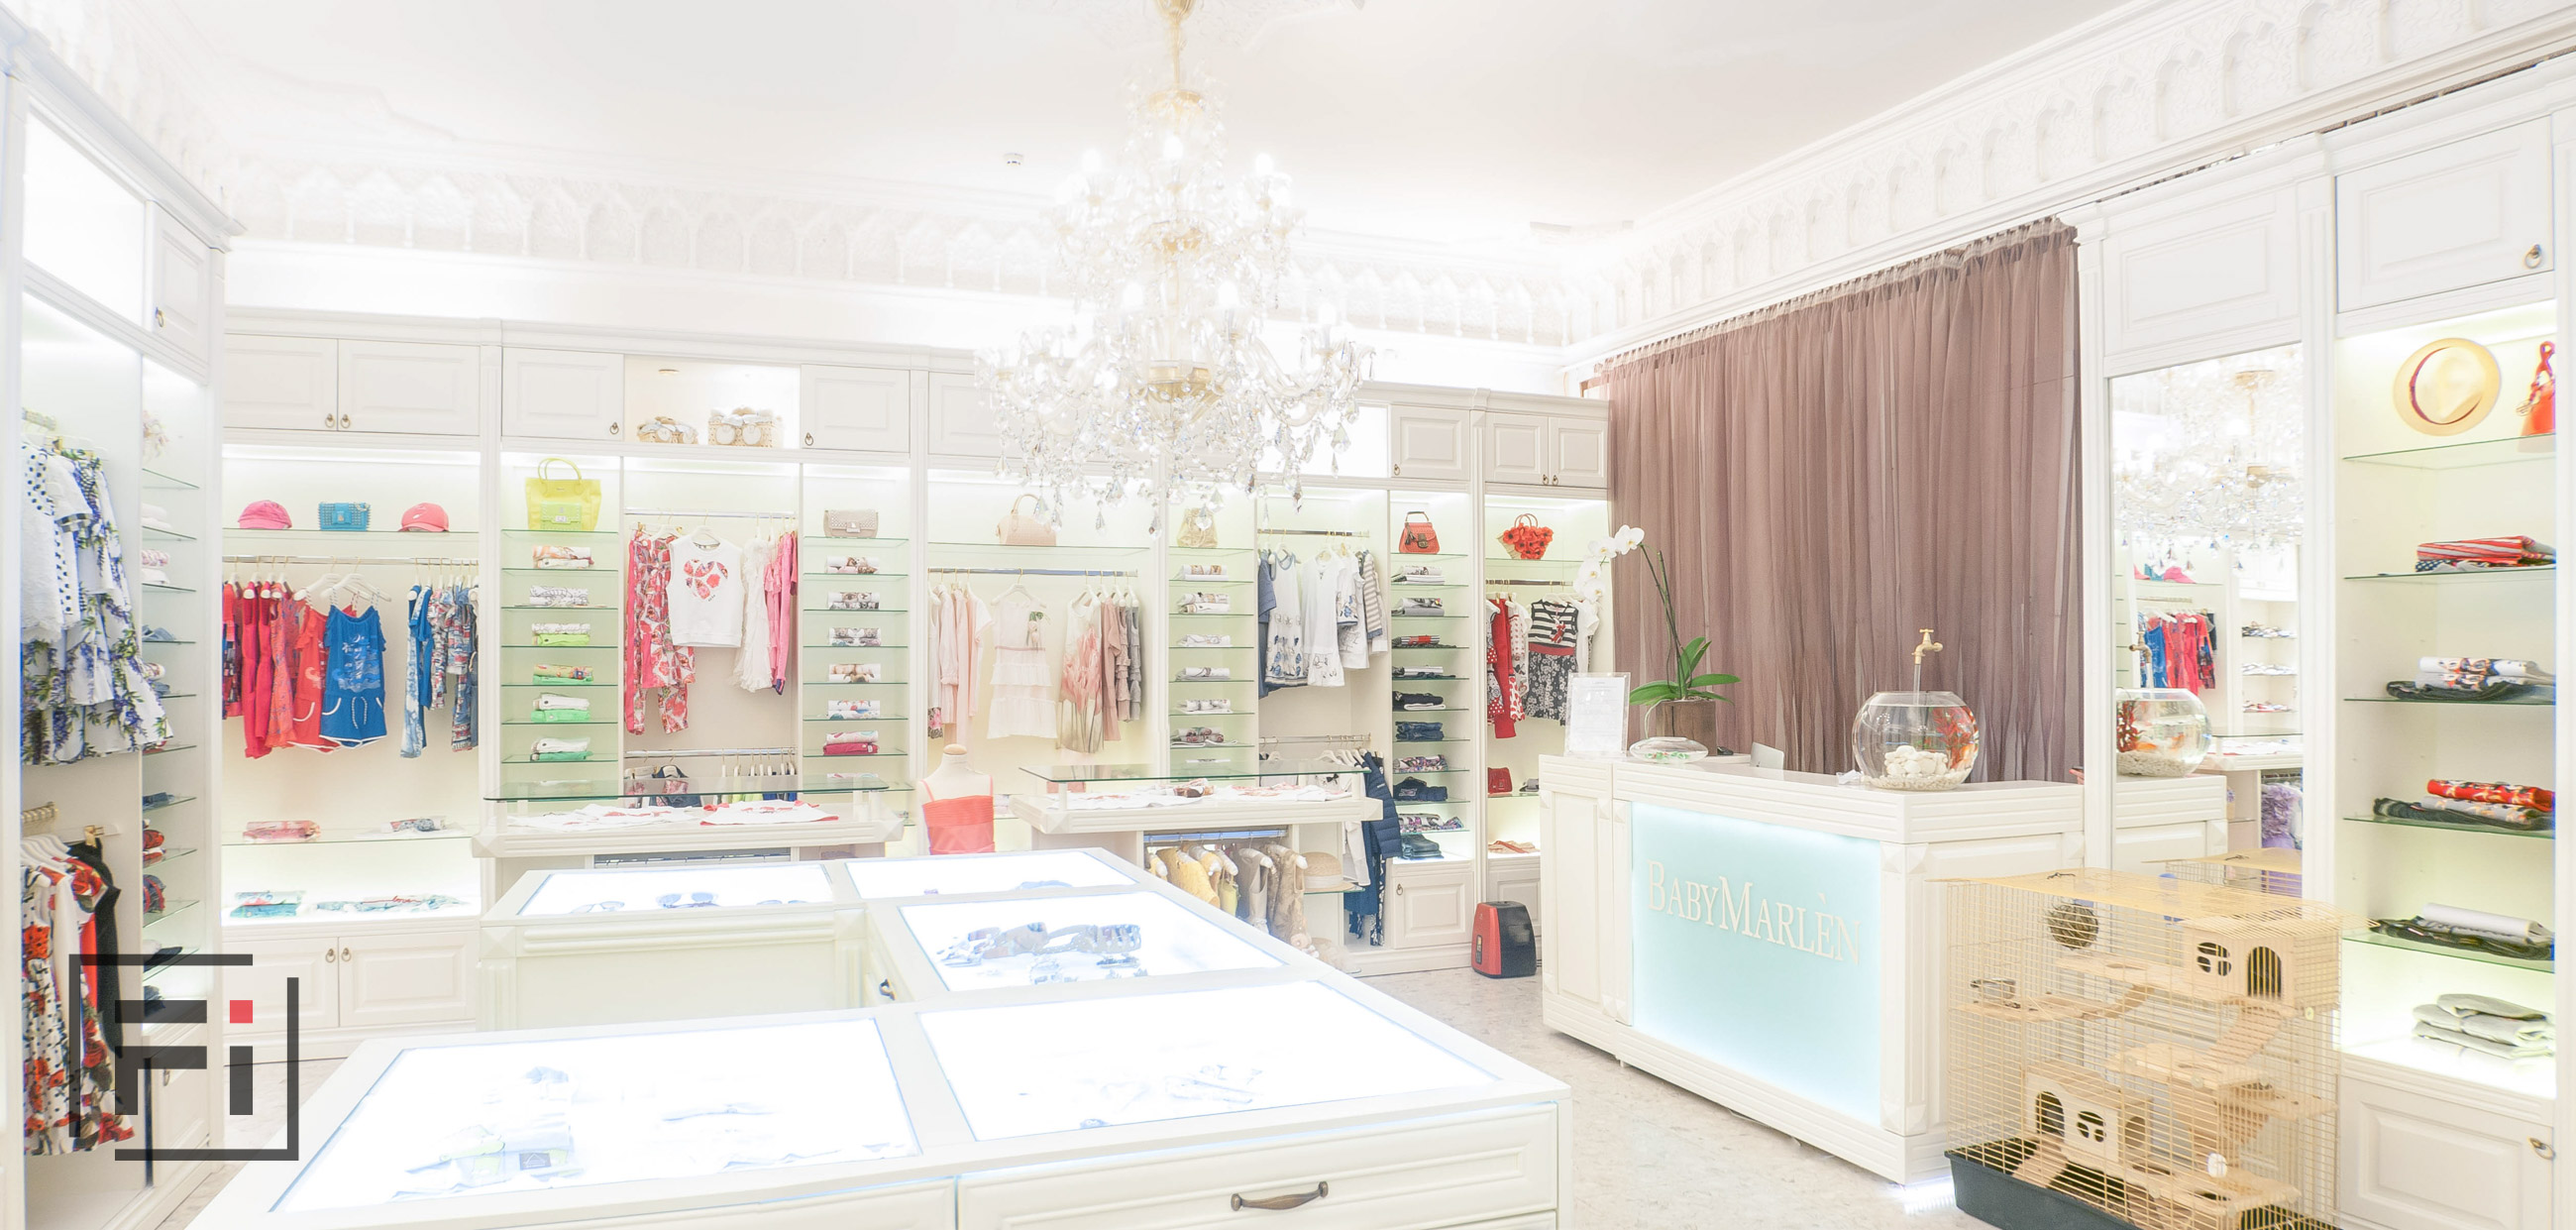 Baby Marlen Helen real estate photo editing companies real estate photo retouching white interior of children store photo by Fantastic Imago-4